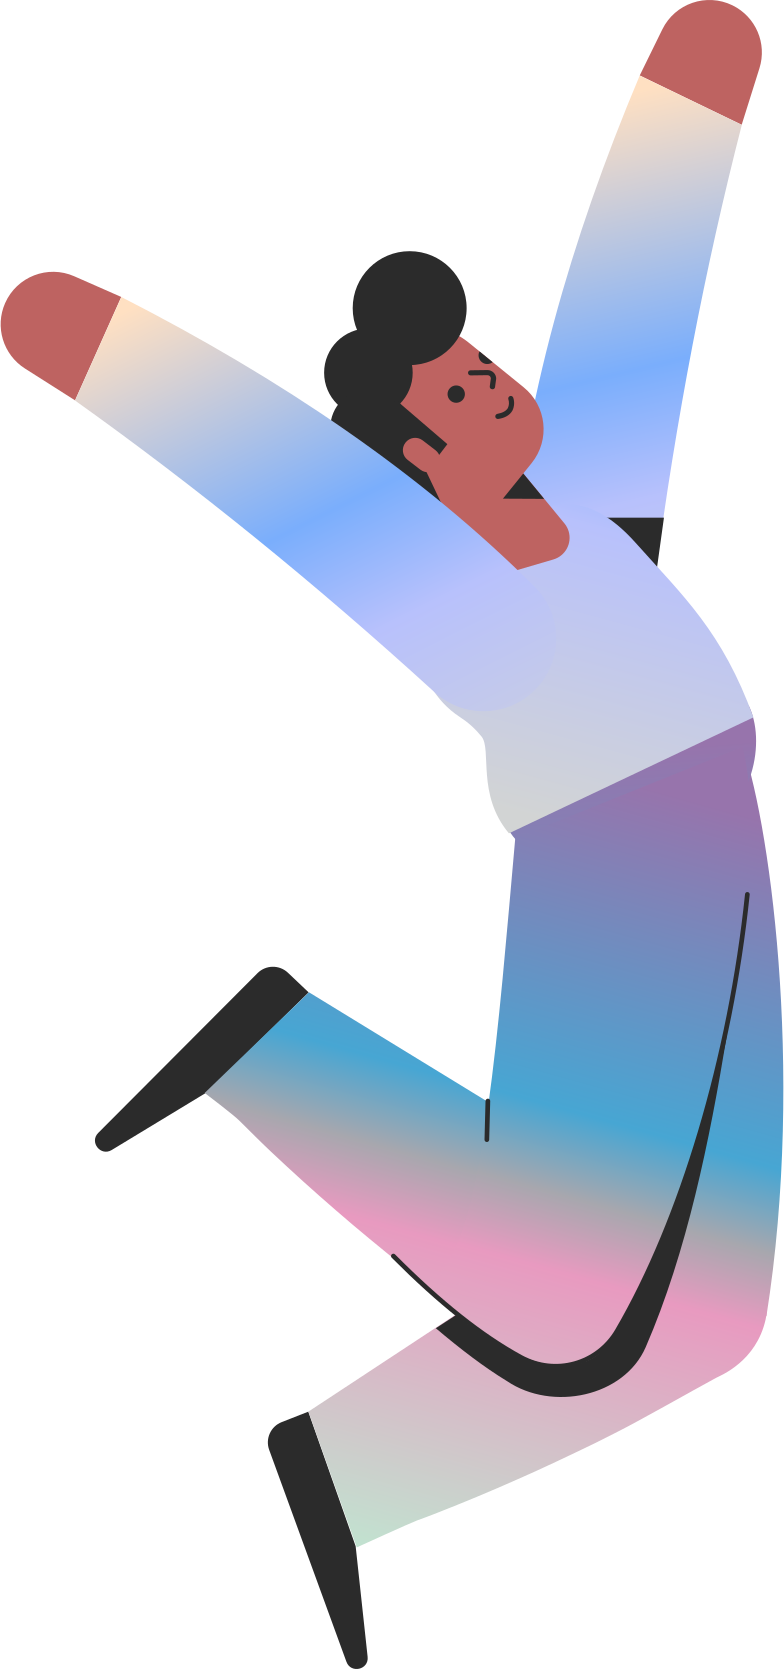 style dancing man Vector images in PNG and SVG | Icons8 Illustrations